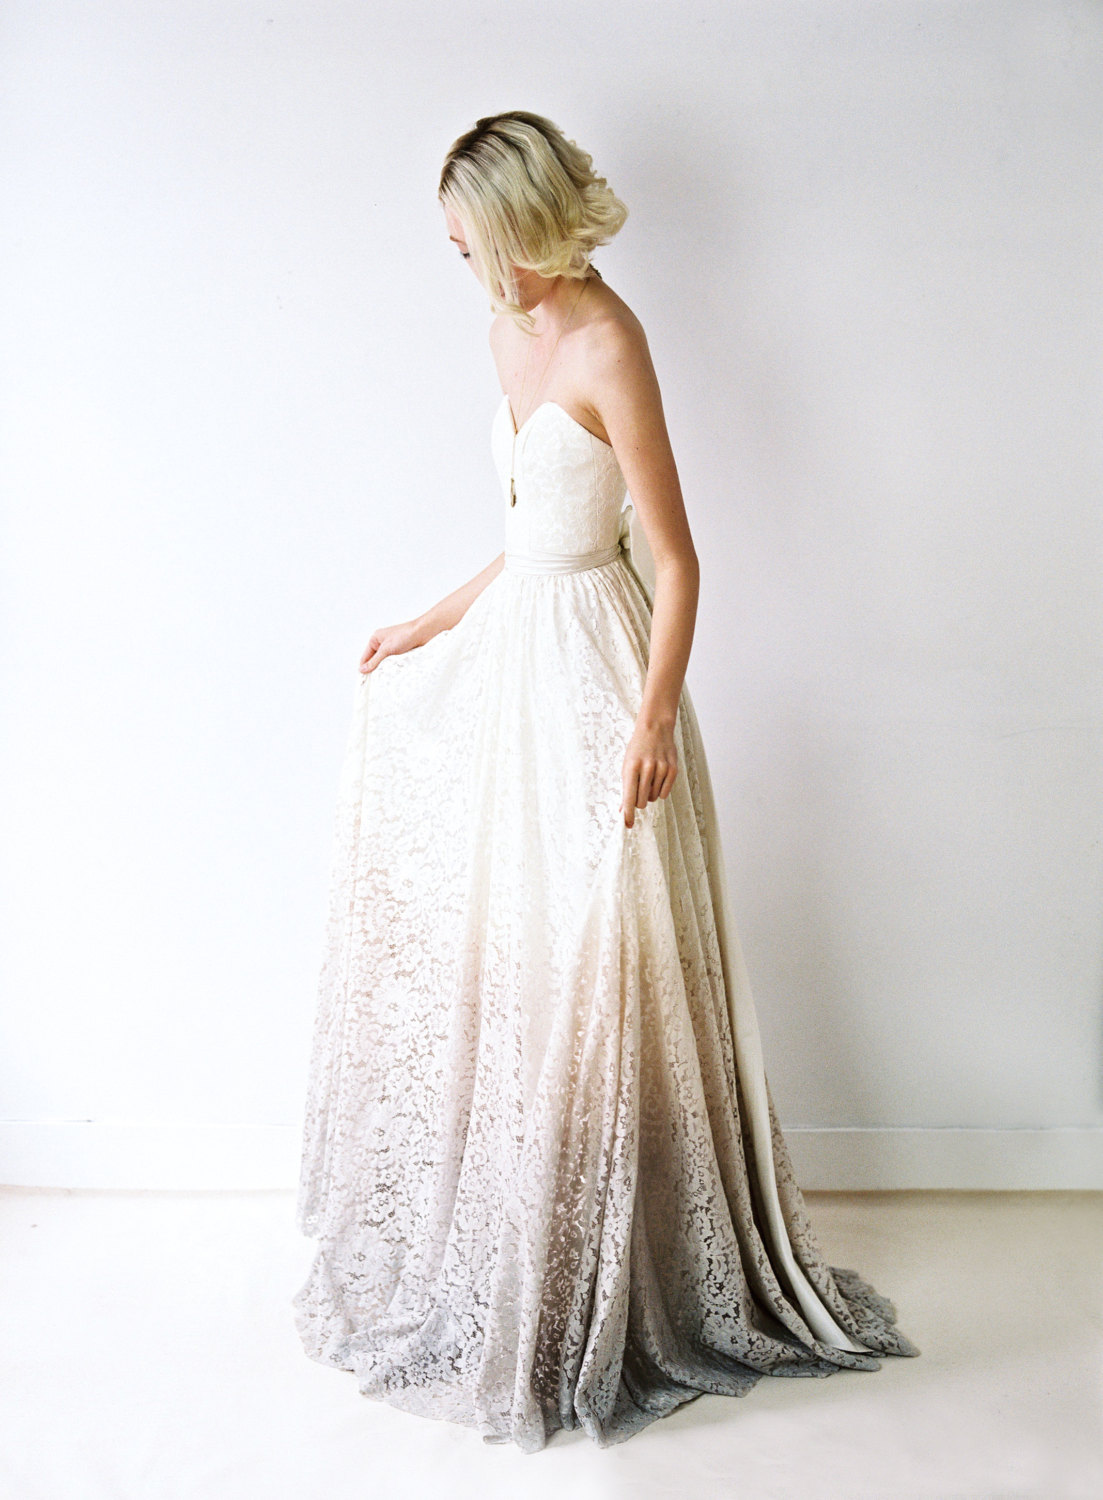 Dyed, lace wedding gown